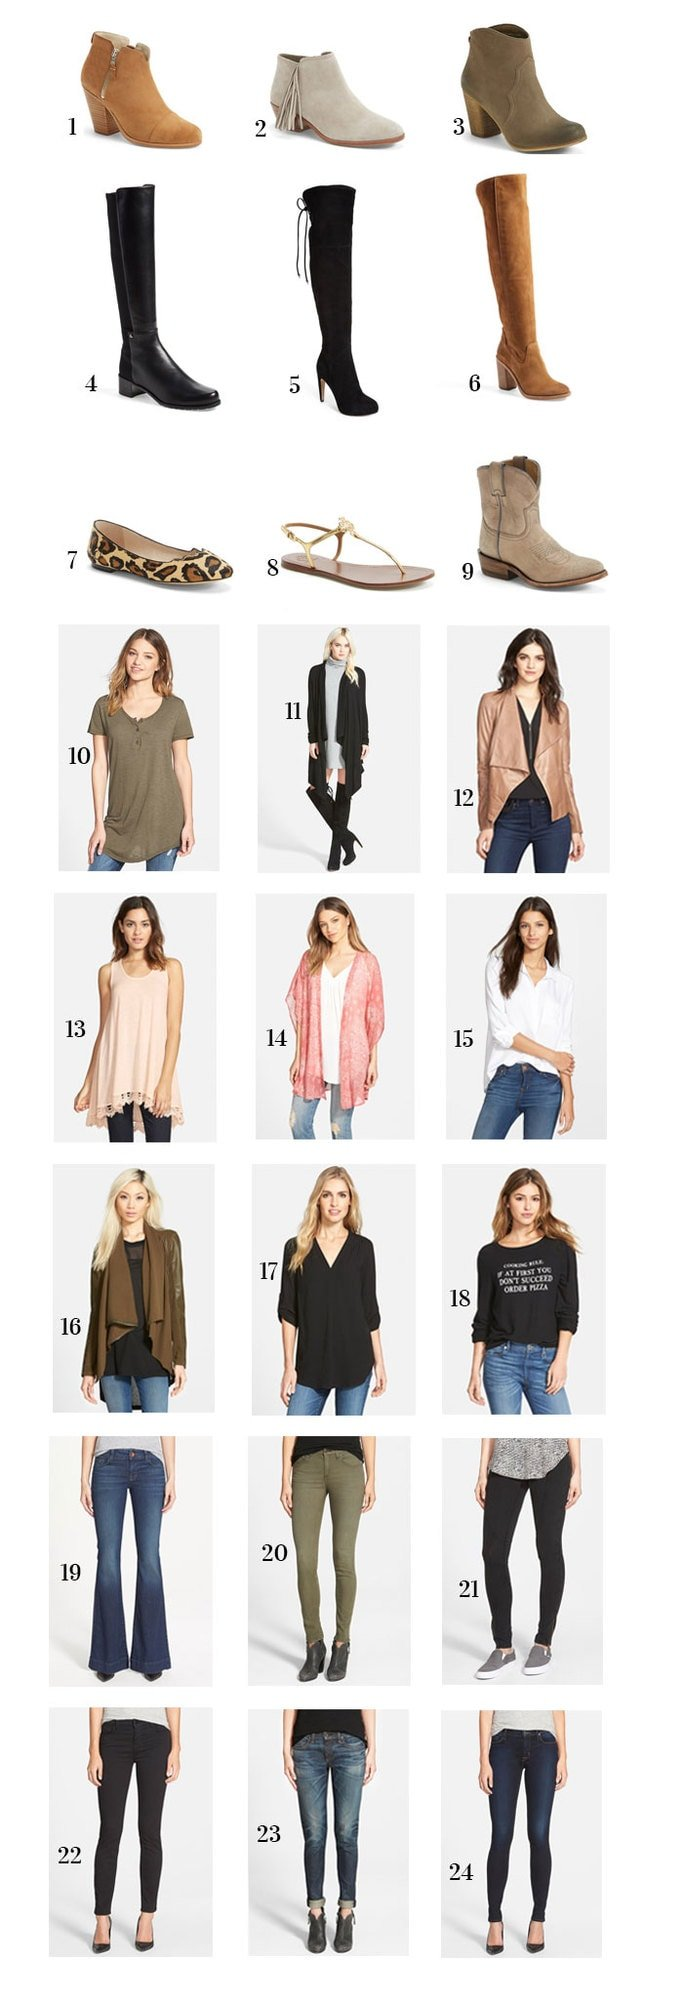 91c228a66cfb nordstrom anniversary sale (early access) - my faves in women s shoes    clothing!!! - Mint Arrow